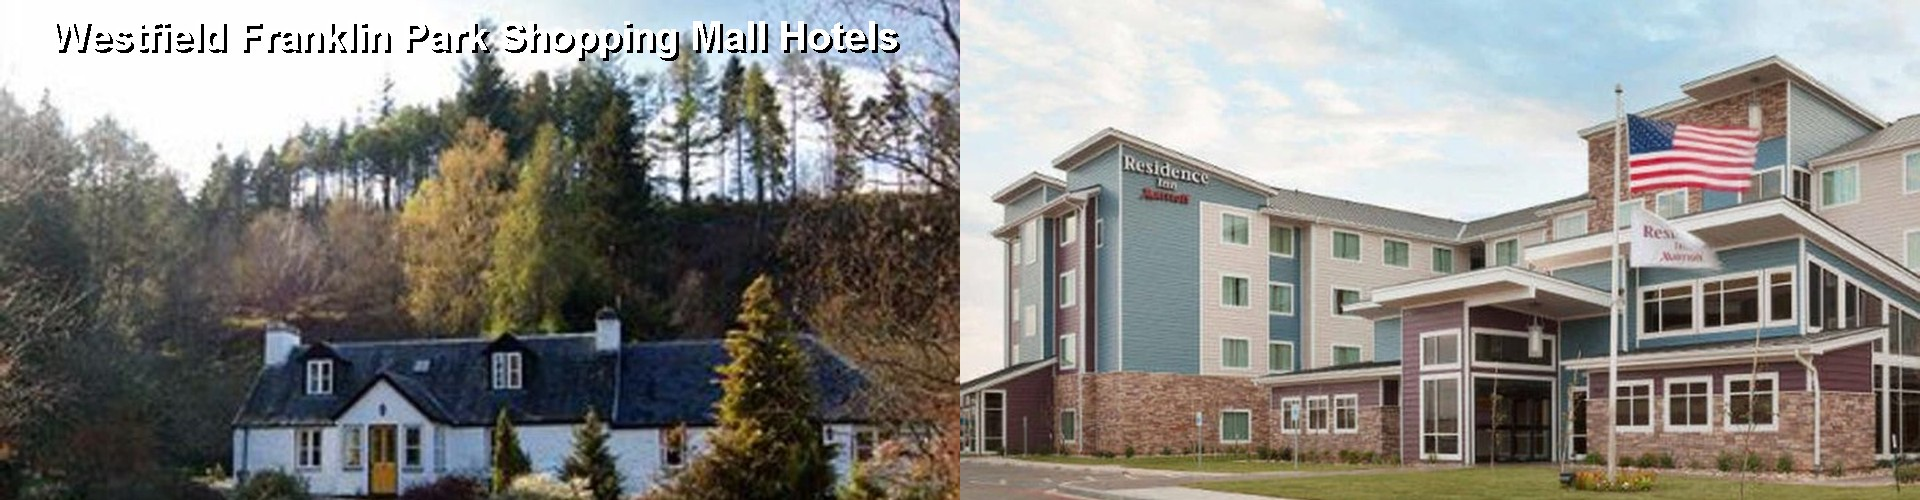 5 Best Hotels near Westfield Franklin Park Shopping Mall